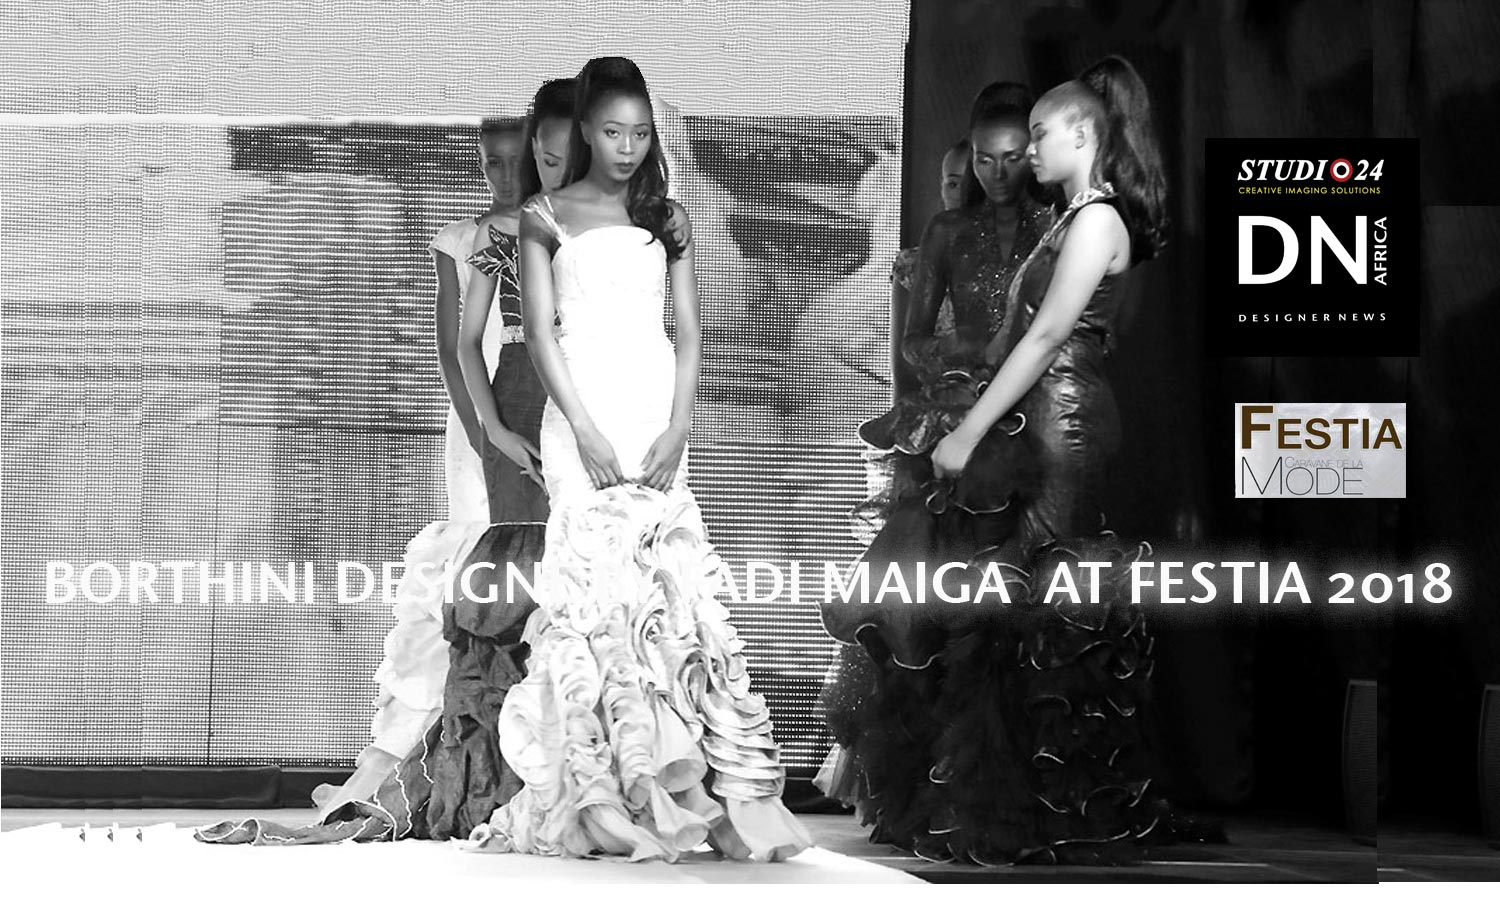 AFRICAN FASHION STYLE MAGAZINE - FESTIA 2018 FIRST EDITION - DESIGNER BORTHINI BY FADI MAIGA FROM MALI  - ORGANIZER FADI MAIGA - Media Partner DN MAG, DN AFRICA -STUDIO 24 NIGERIA - STUDIO 24 INTERNATIONAL - RP INDIRA EVENTS BY INDIRA YANNI DOMINGO